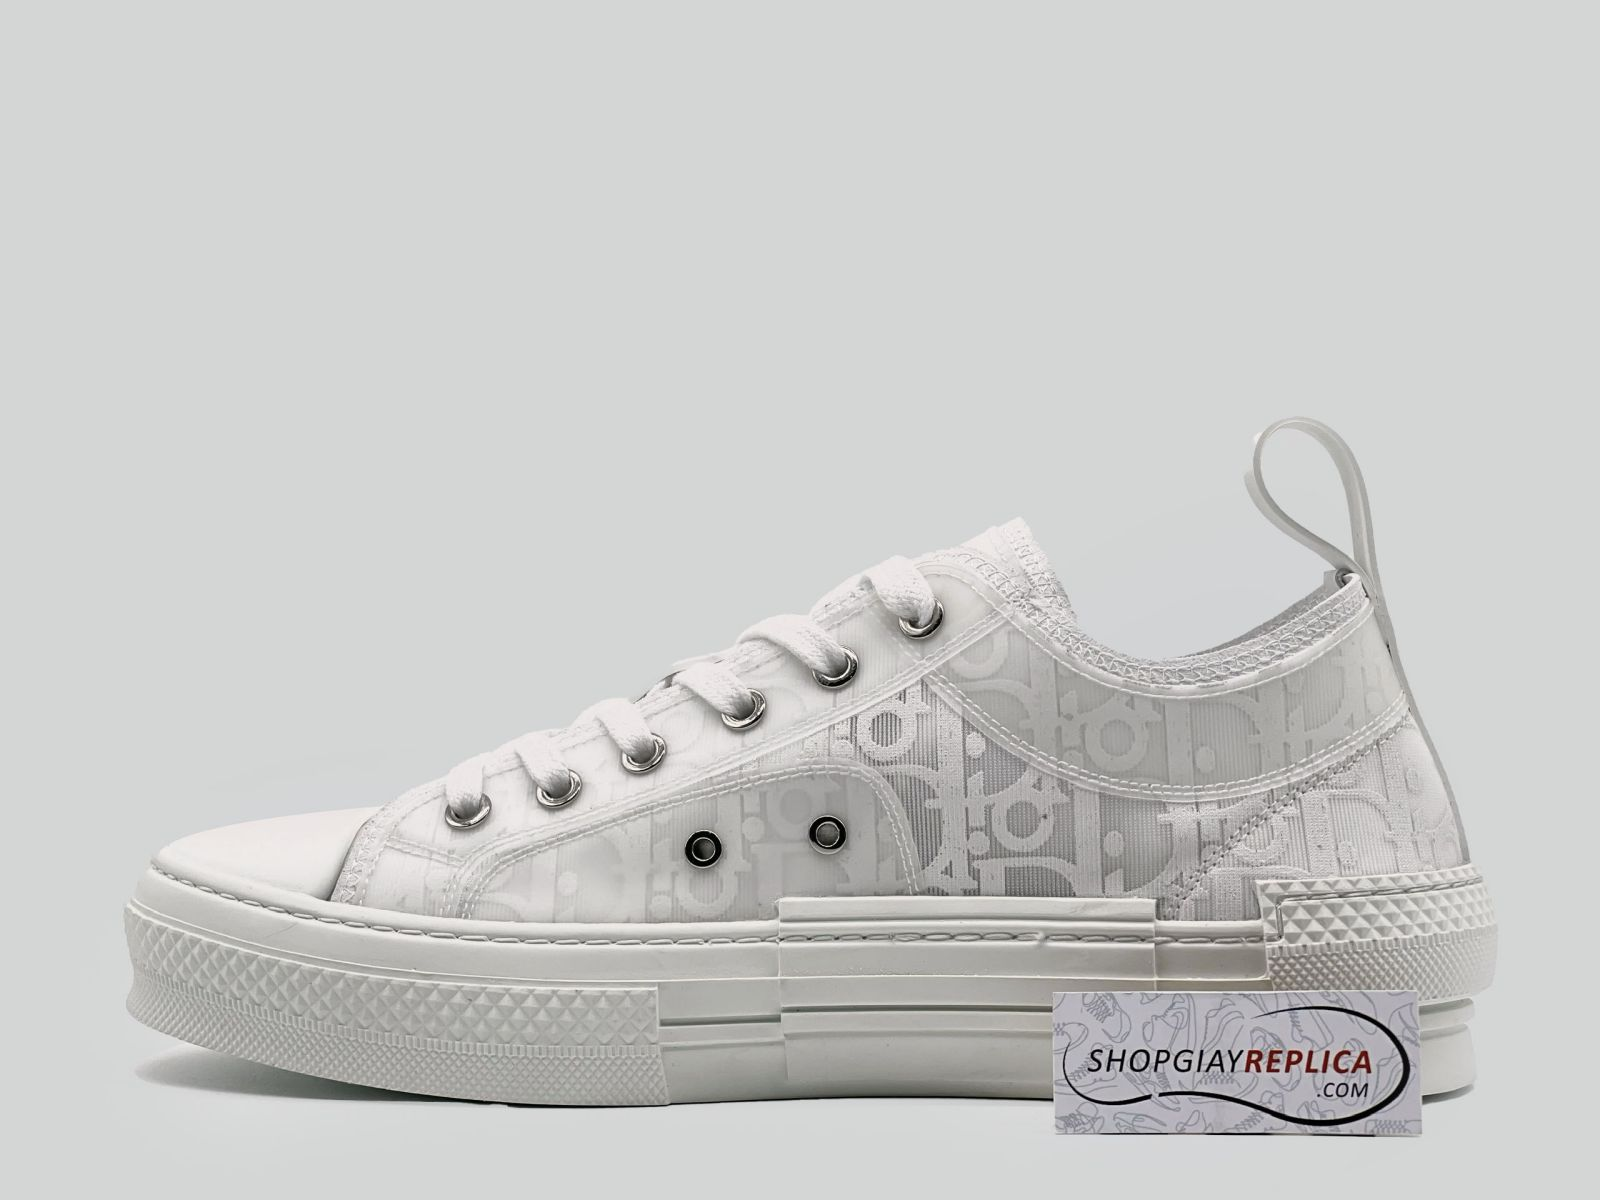 Giày Dior B23 Low White Dior Like Auth